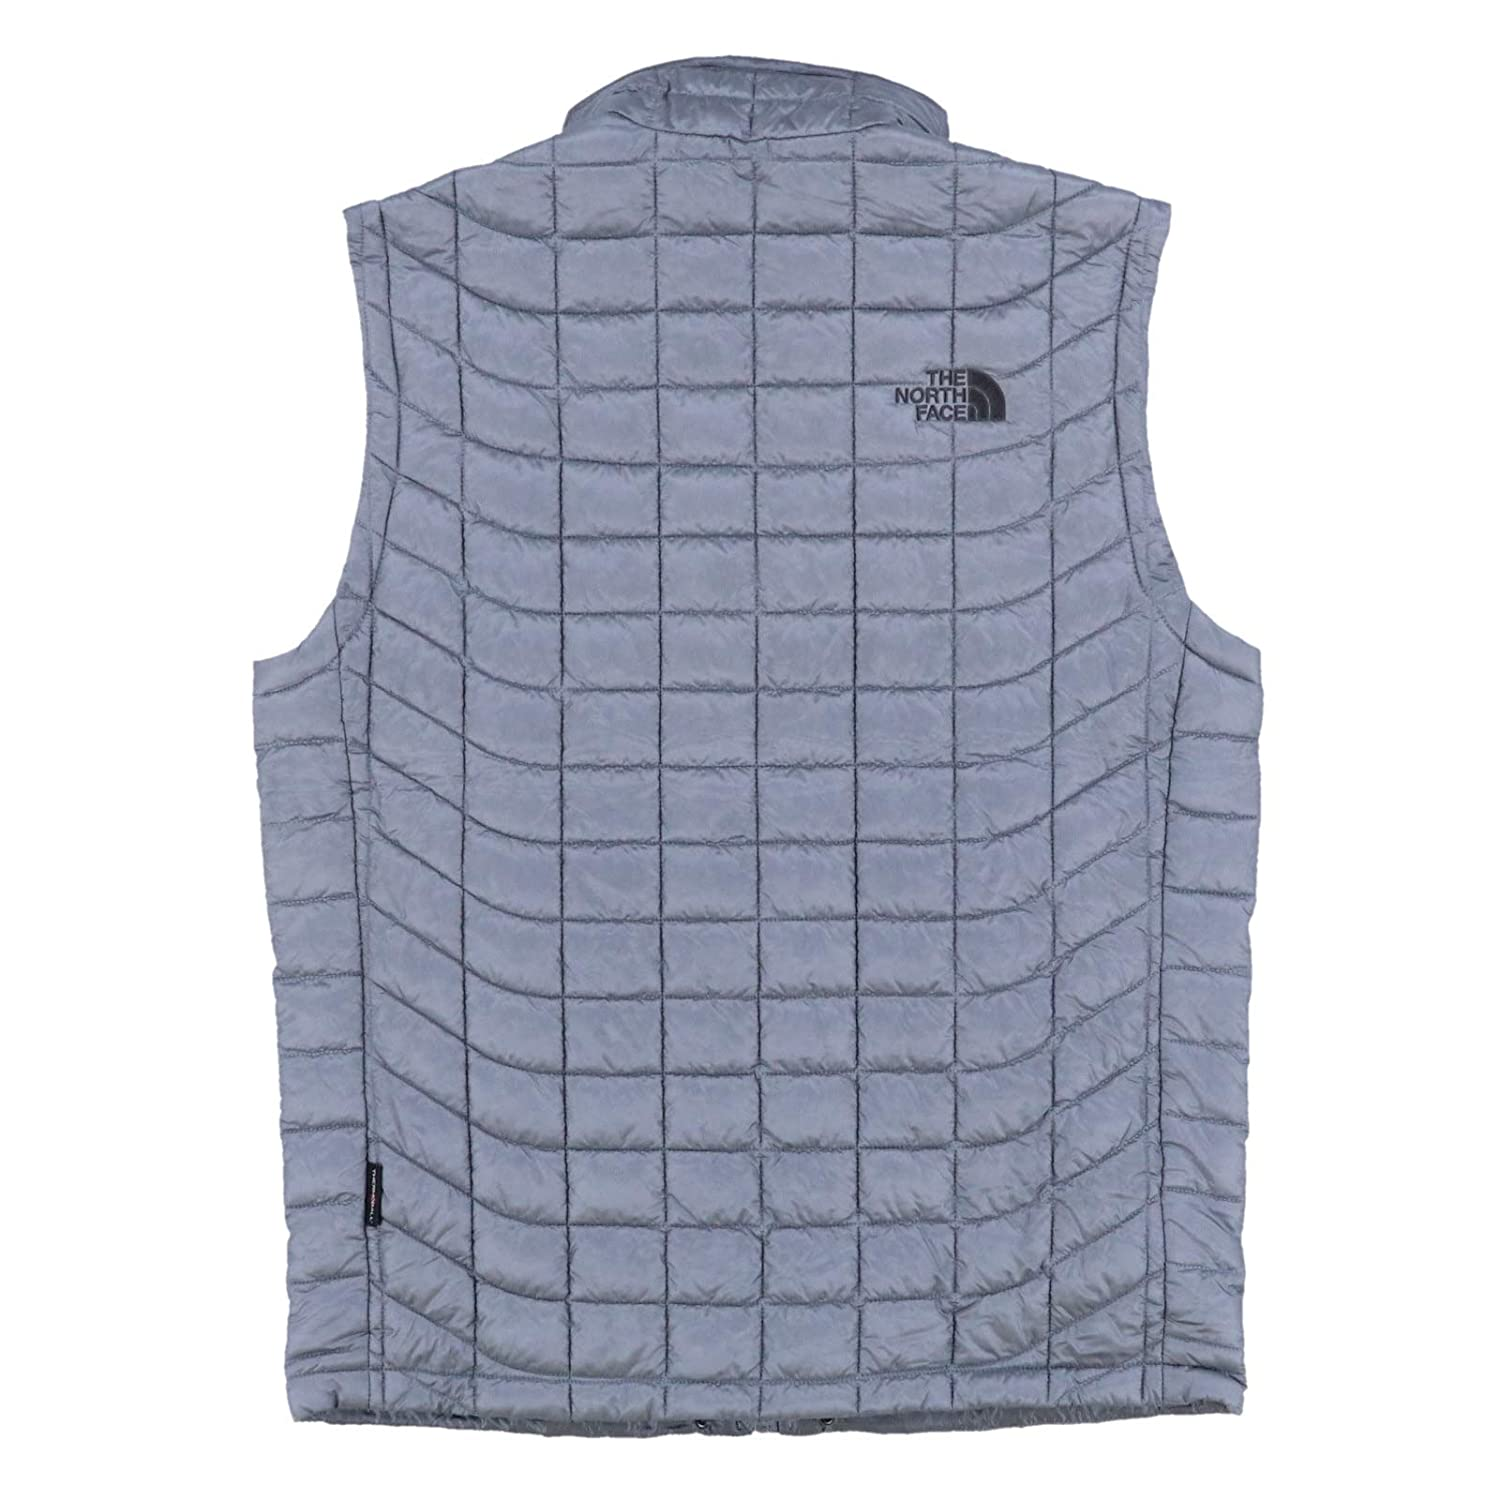 3da5ee4da The North Face Mens Thermoball Puffer Vest